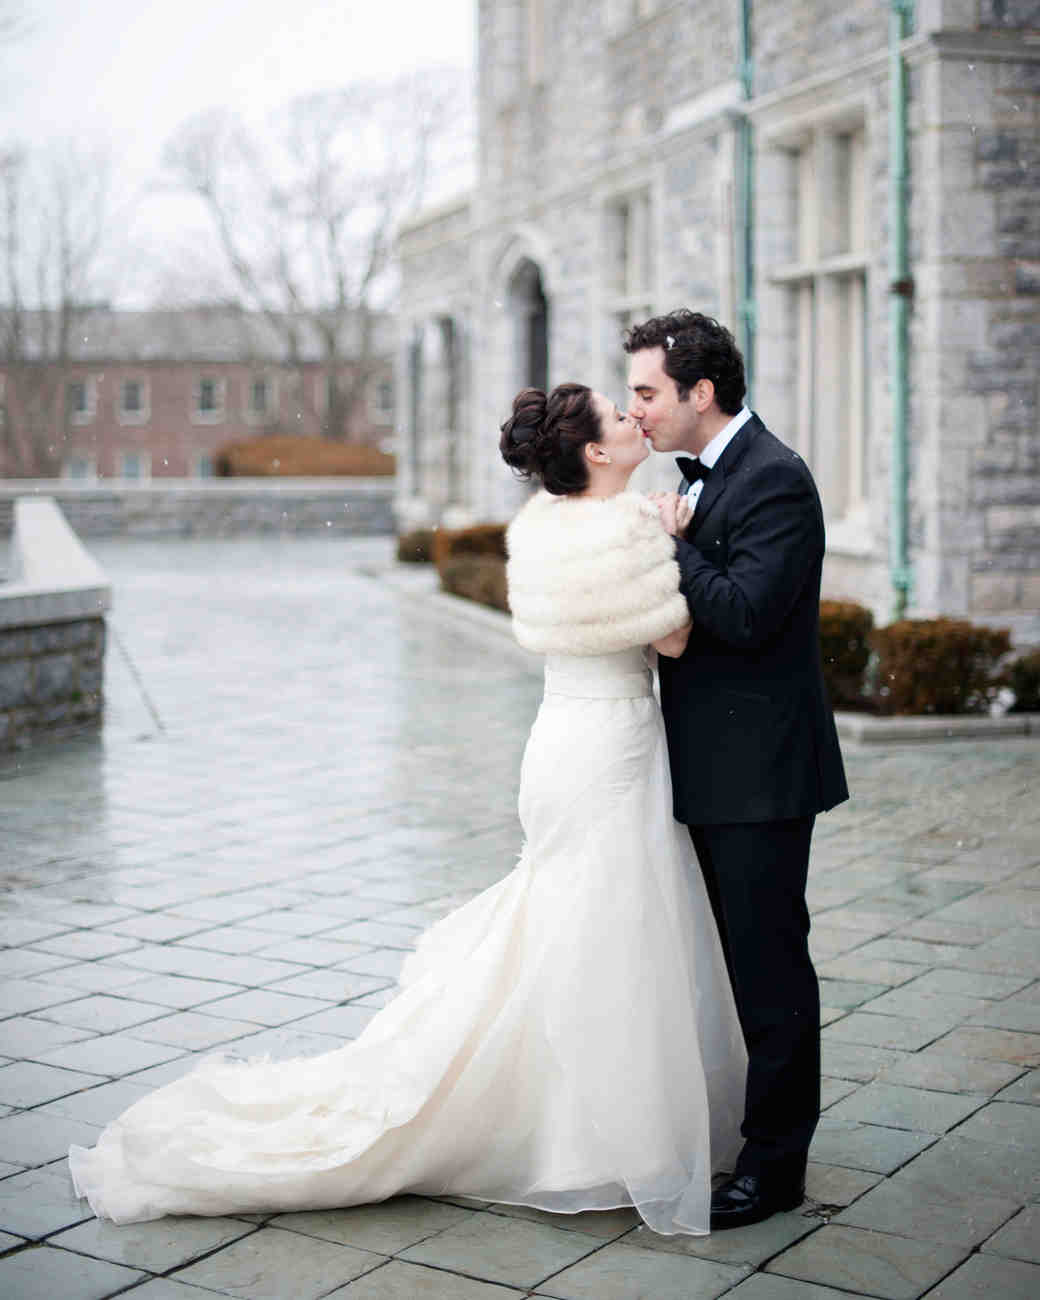 Winter Weddings: An Intimate, Formal Winter Wedding In Connecticut